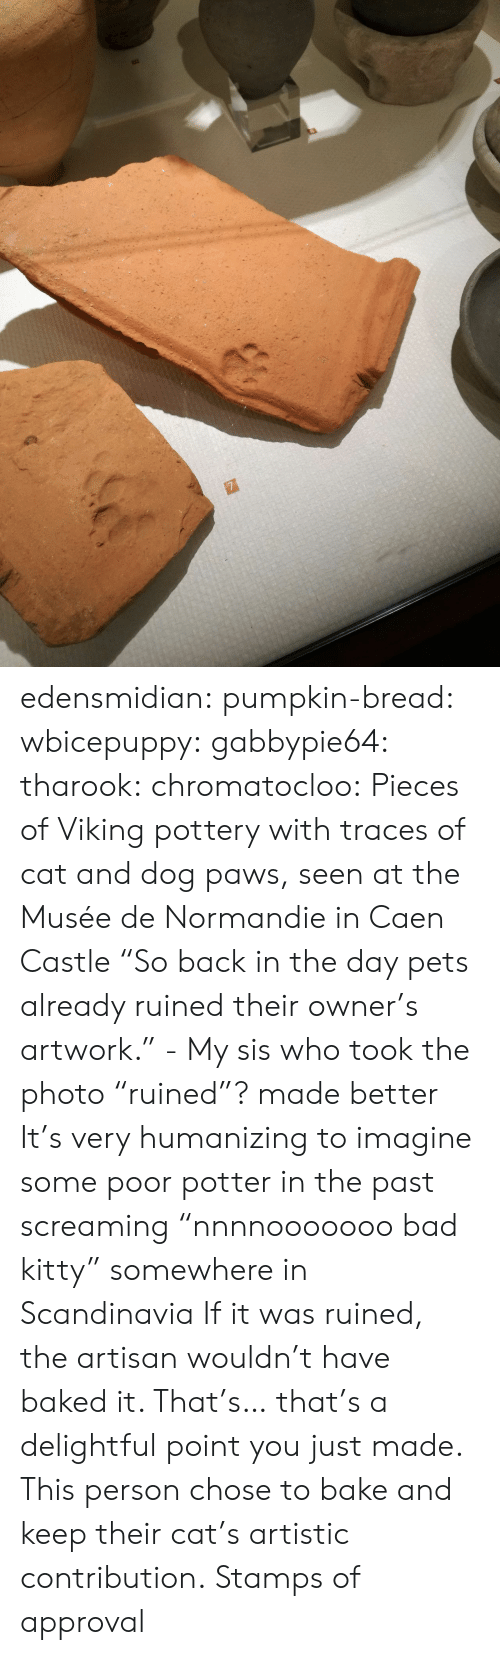 "Bad, Baked, and Tumblr: edensmidian:  pumpkin-bread:  wbicepuppy:  gabbypie64:  tharook:  chromatocloo:  Pieces of Viking pottery with traces of cat and dog paws, seen at the Musée de Normandie in Caen Castle ""So back in the day pets already ruined their owner's artwork."" - My sis who took the photo   ""ruined""? made better   It's very humanizing to imagine some poor potter in the past screaming ""nnnnooooooo bad kitty"" somewhere in Scandinavia   If it was ruined, the artisan wouldn't have baked it.   That's… that's a delightful point you just made. This person chose to bake and keep their cat's artistic contribution.   Stamps of approval"